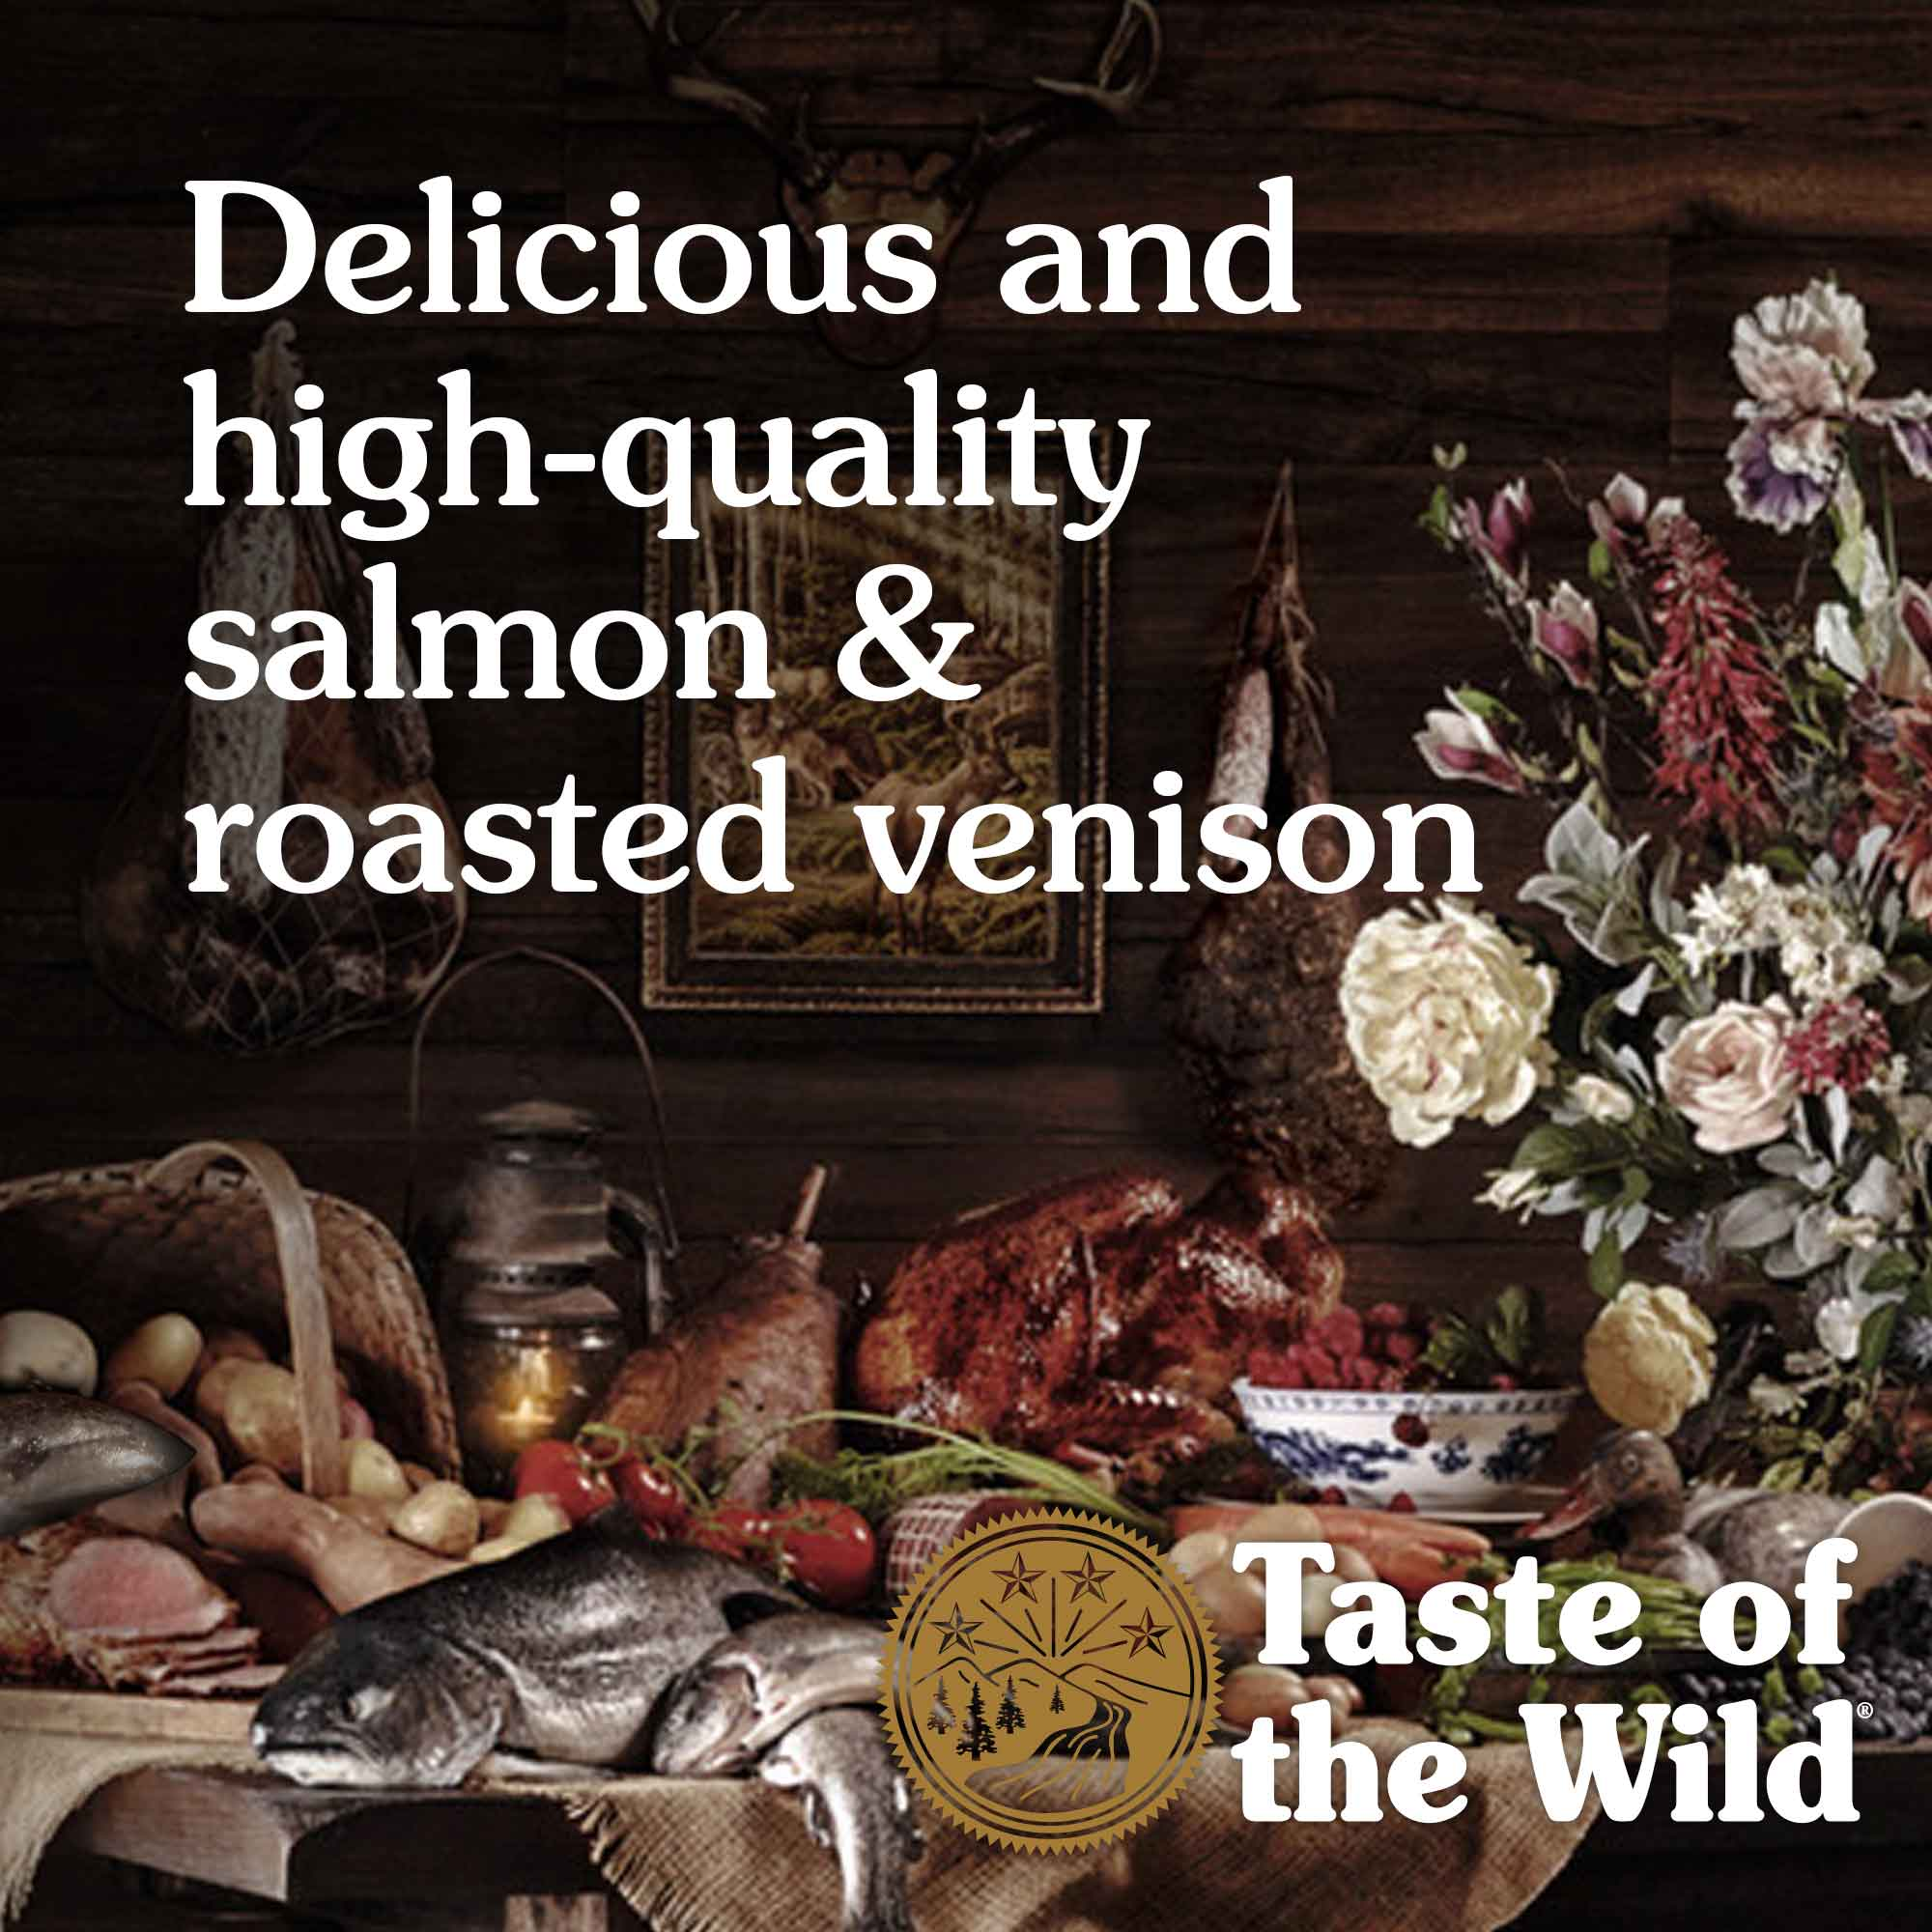 Delicious and high-quality salmon & roasted venison